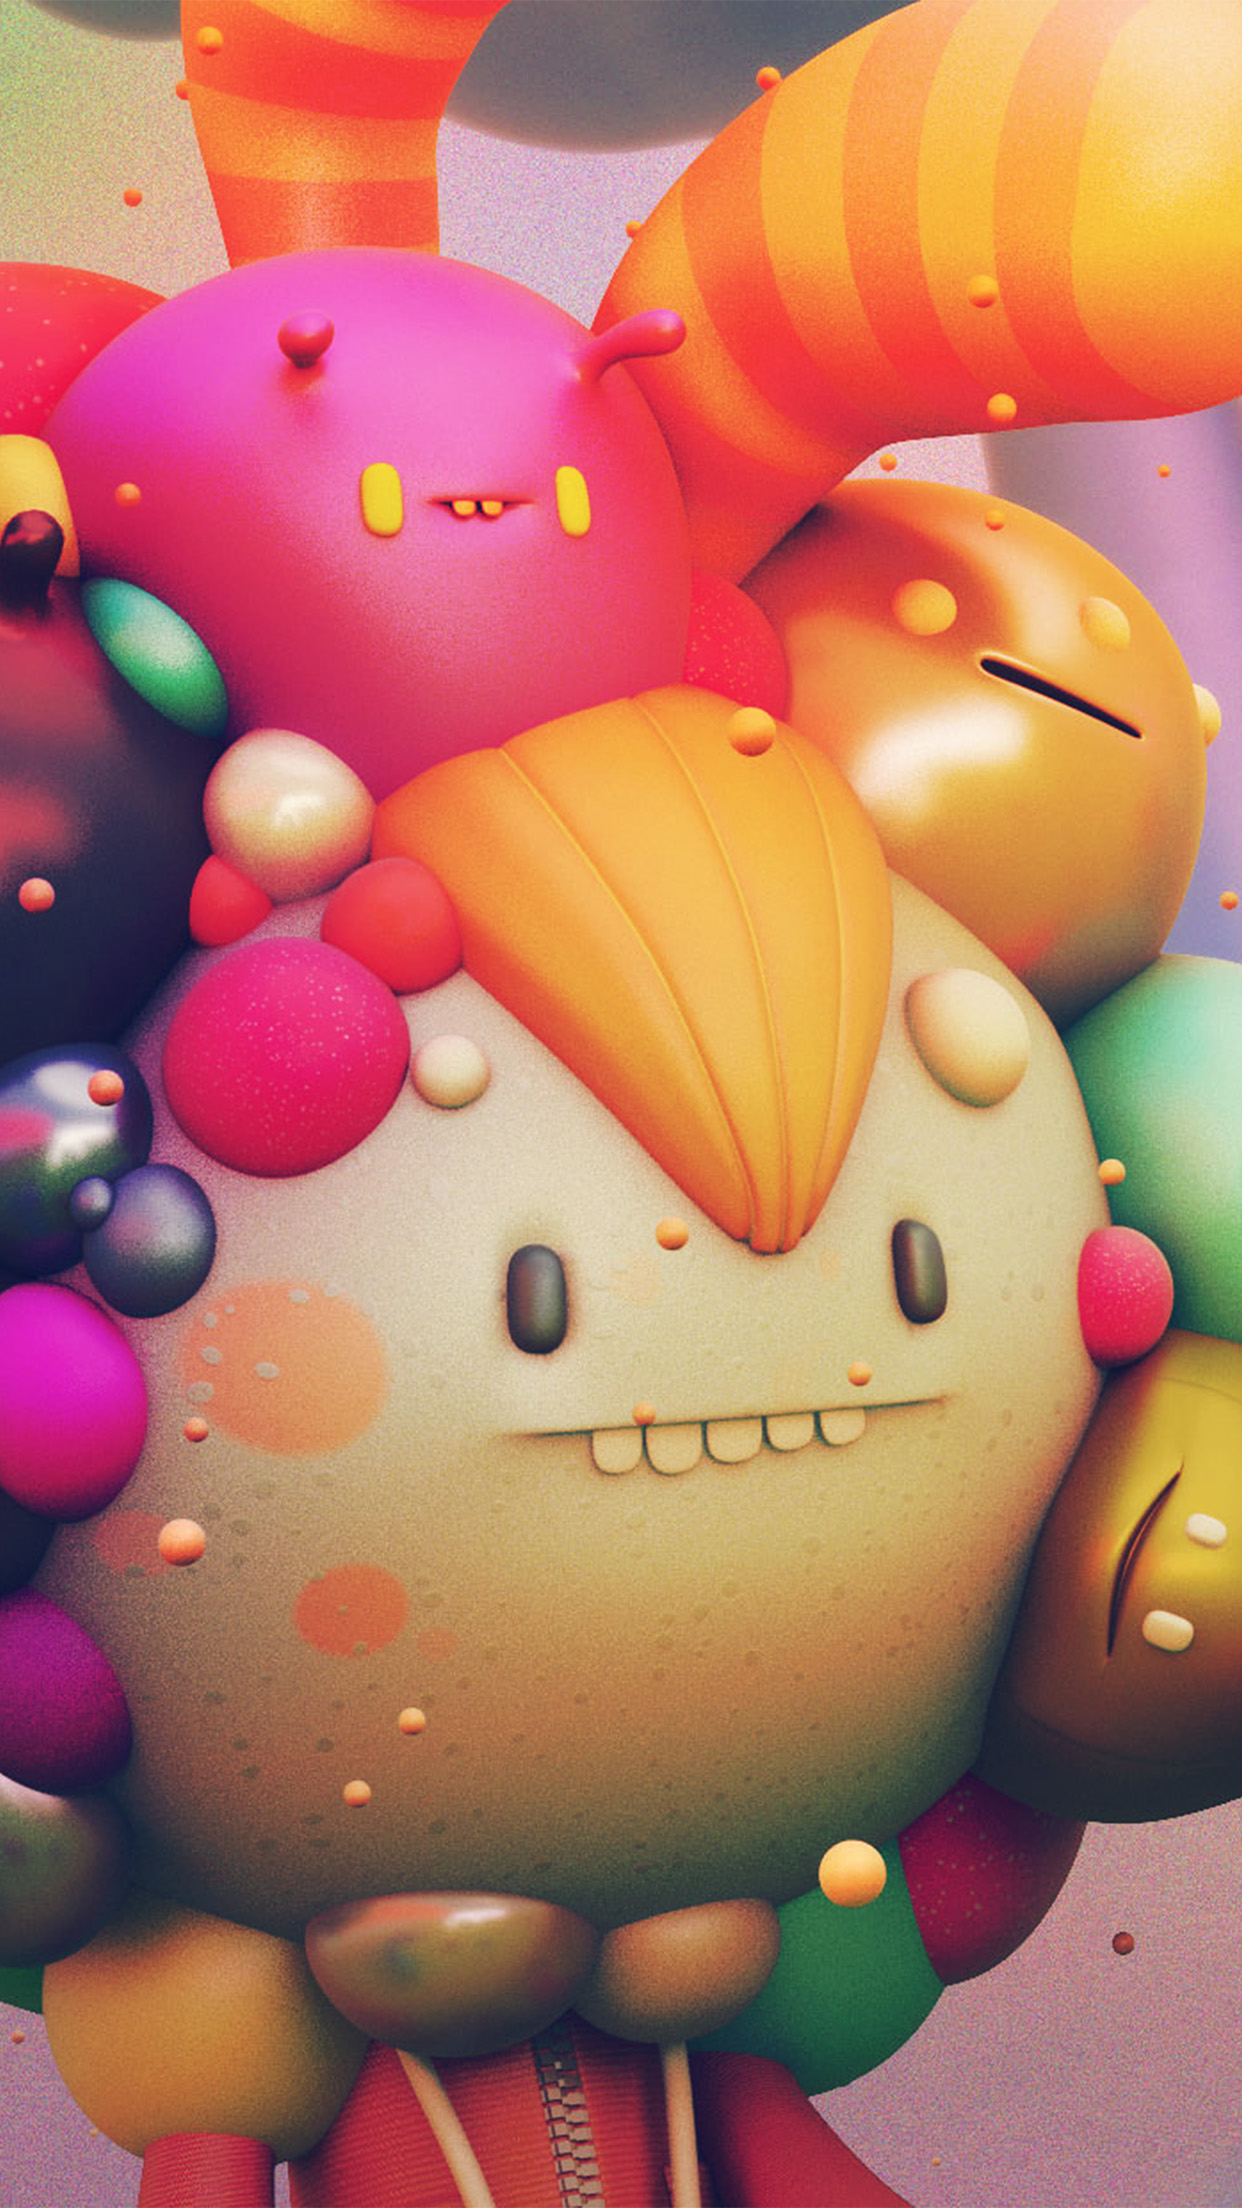 papers.co ay16 cute monster character 3d illustration art 34 iphone6 plus wallpaper